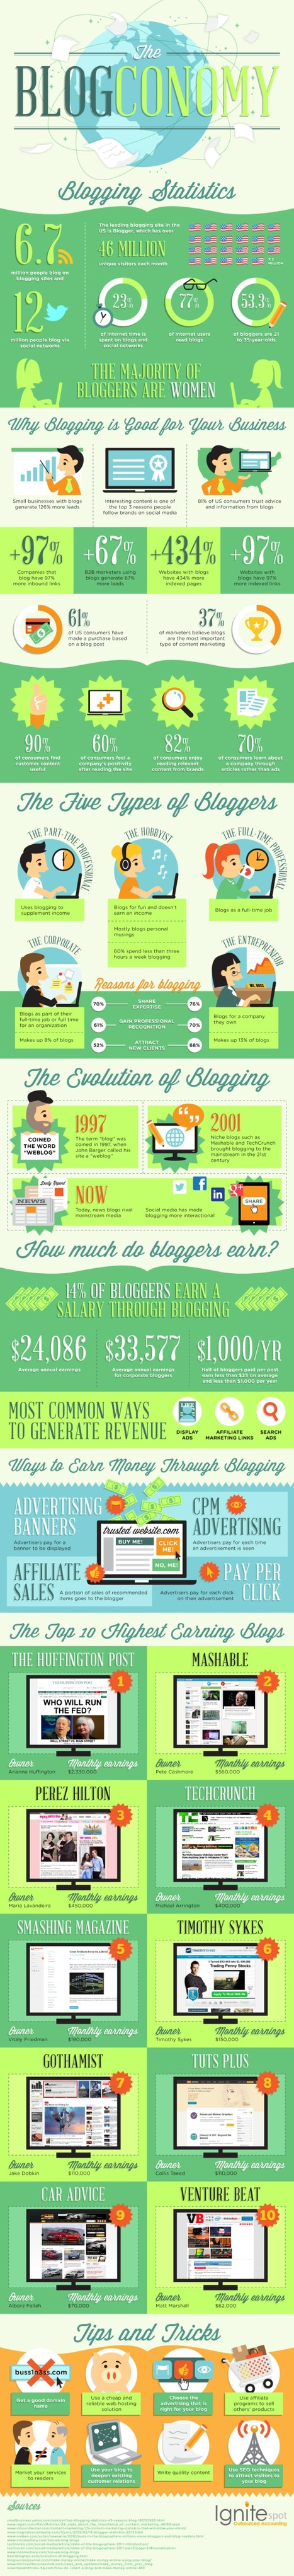 Infographic: The Blogconomy and Blogging Stats | Inbound Marketing | Scoop.it